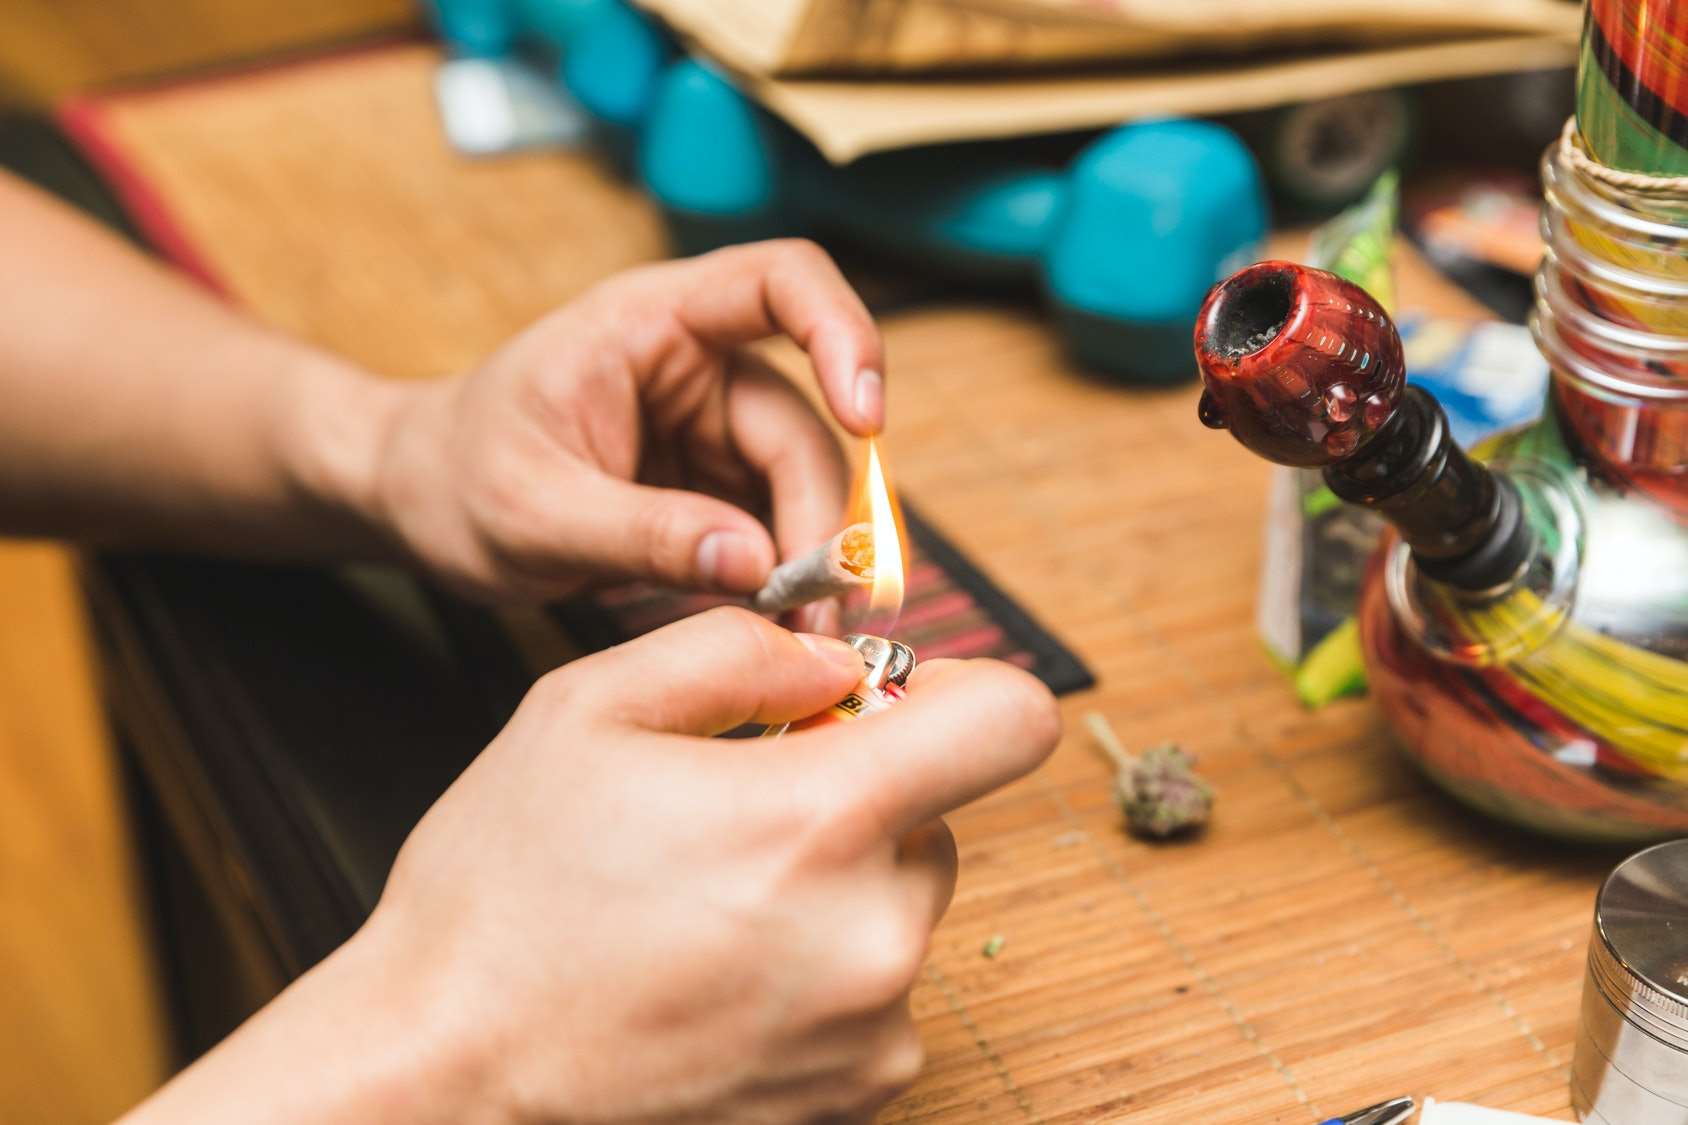 8 Side Effects Of Getting High, Explained